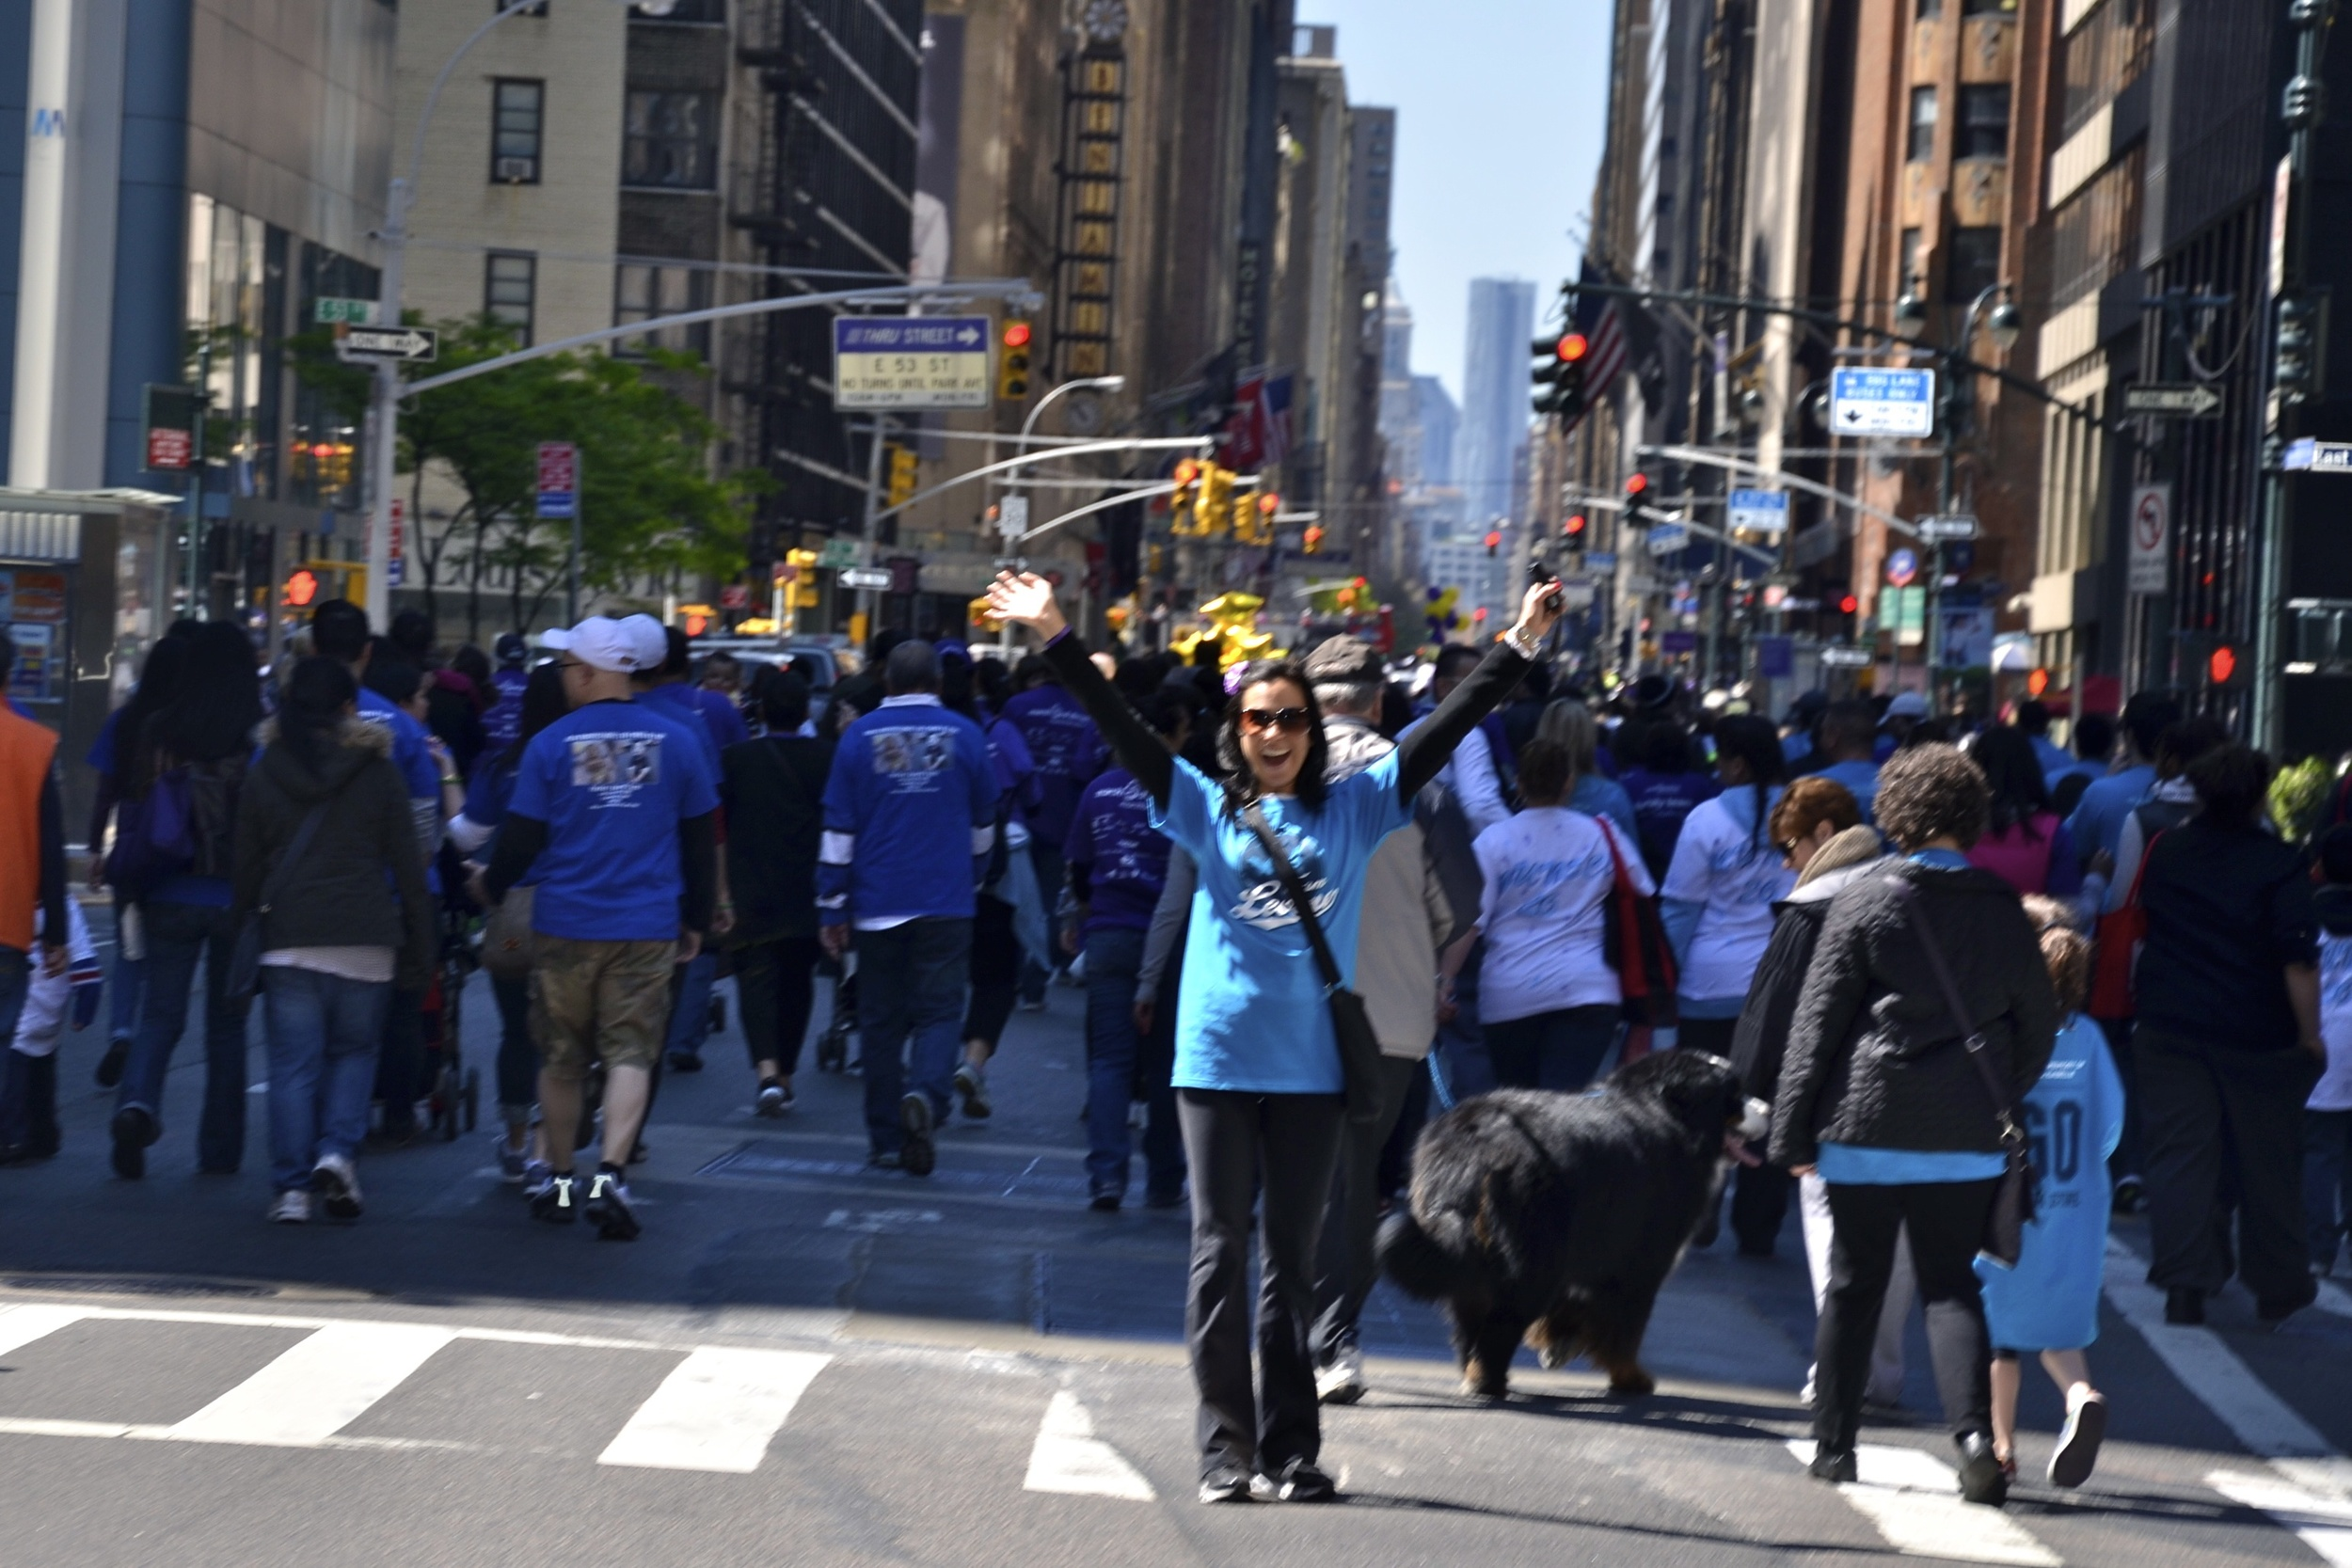 paulina-levine-happy-to-be-leading-team-levine-at-the-2012-march-for-babies-walk_8540258644_o.jpg